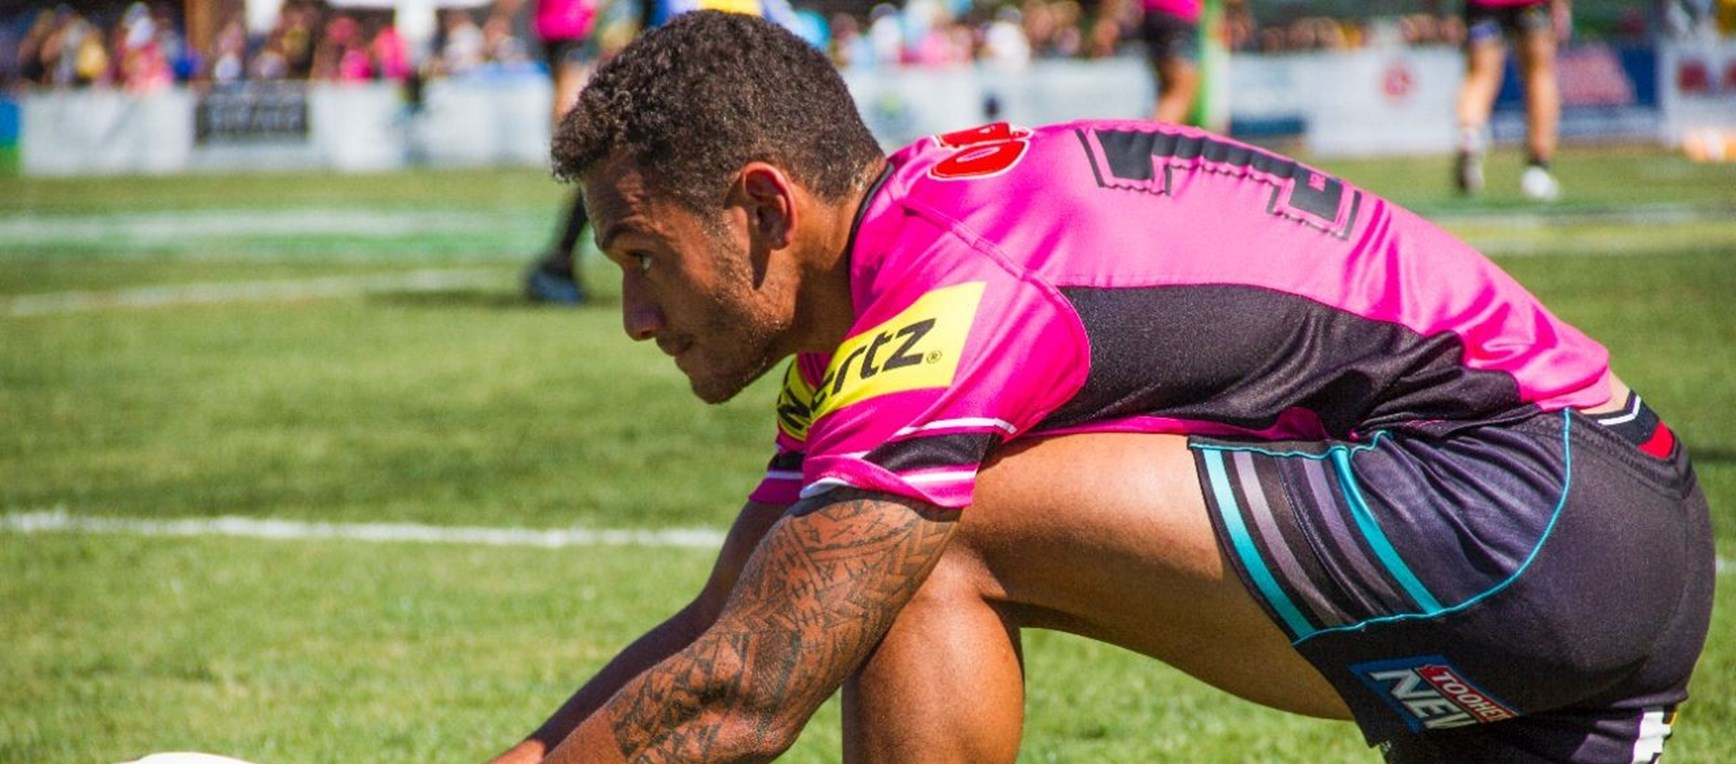 NYC & NSW Cup Photo Gallery